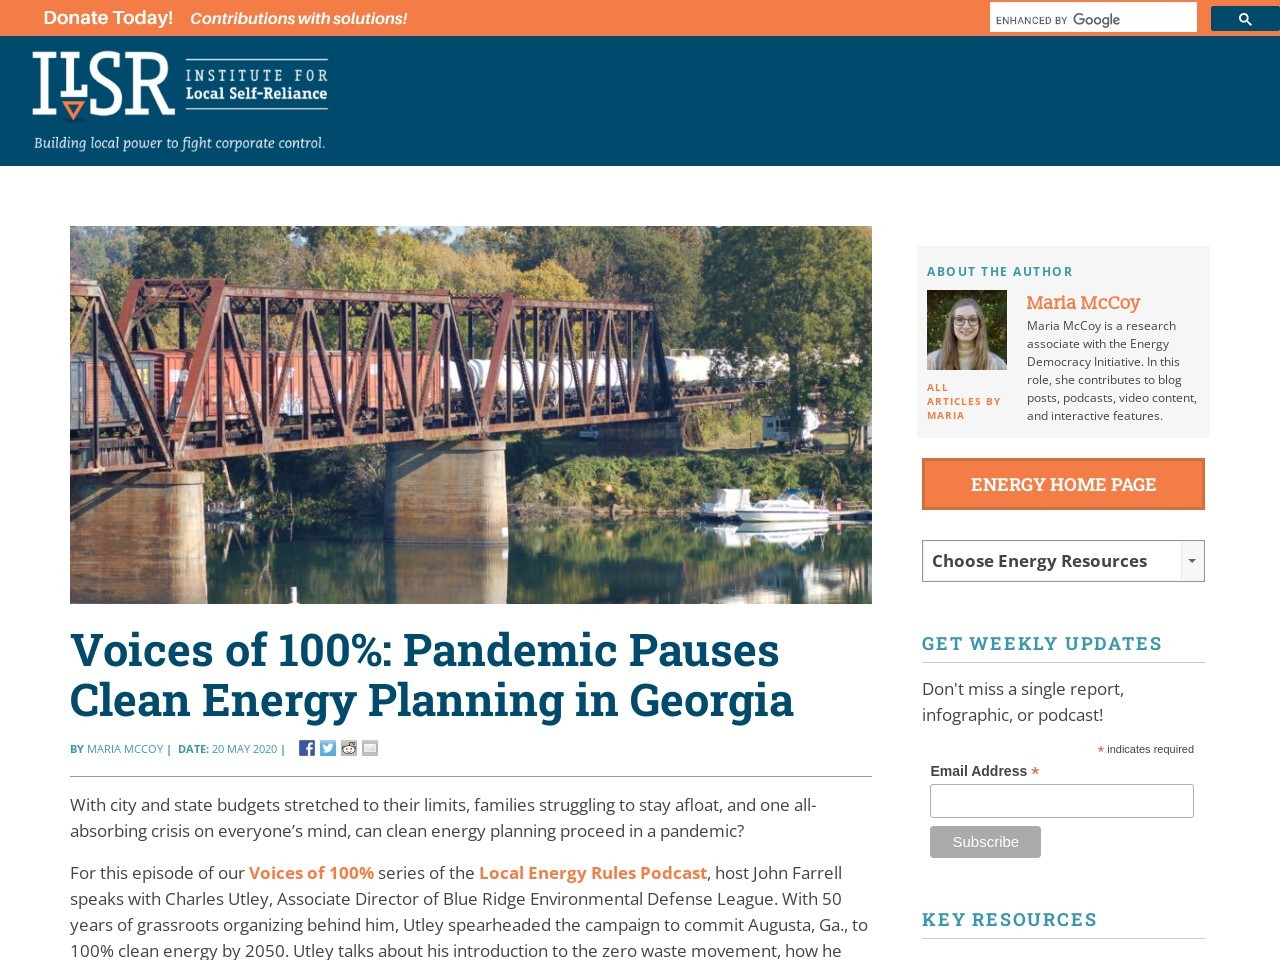 Voices of 100%: Pandemic Pauses Clean Energy Planning in Georgia